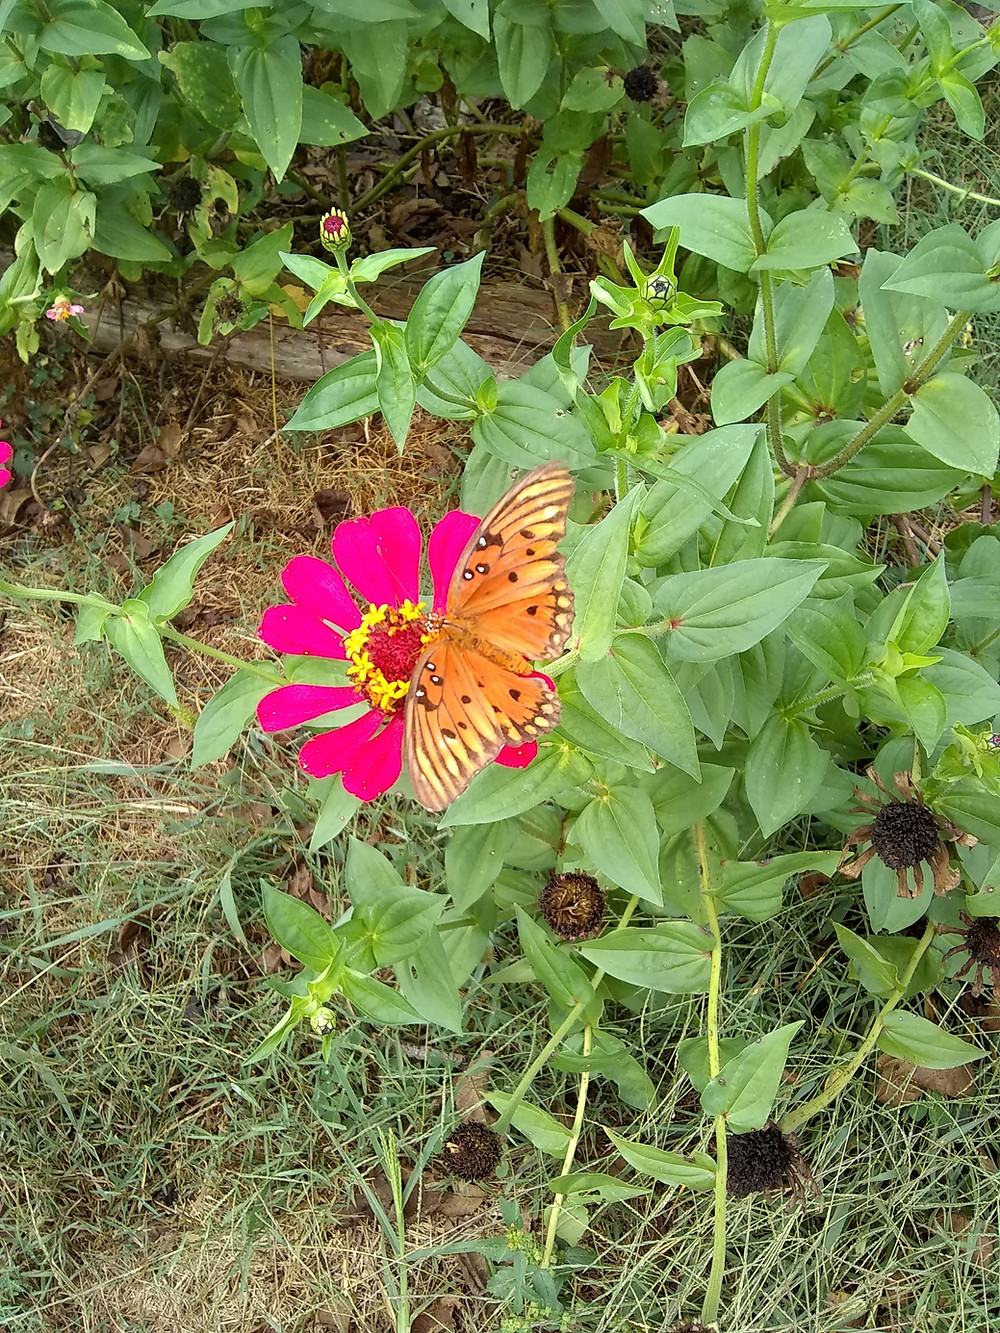 Butterfly pollinating a zinnia